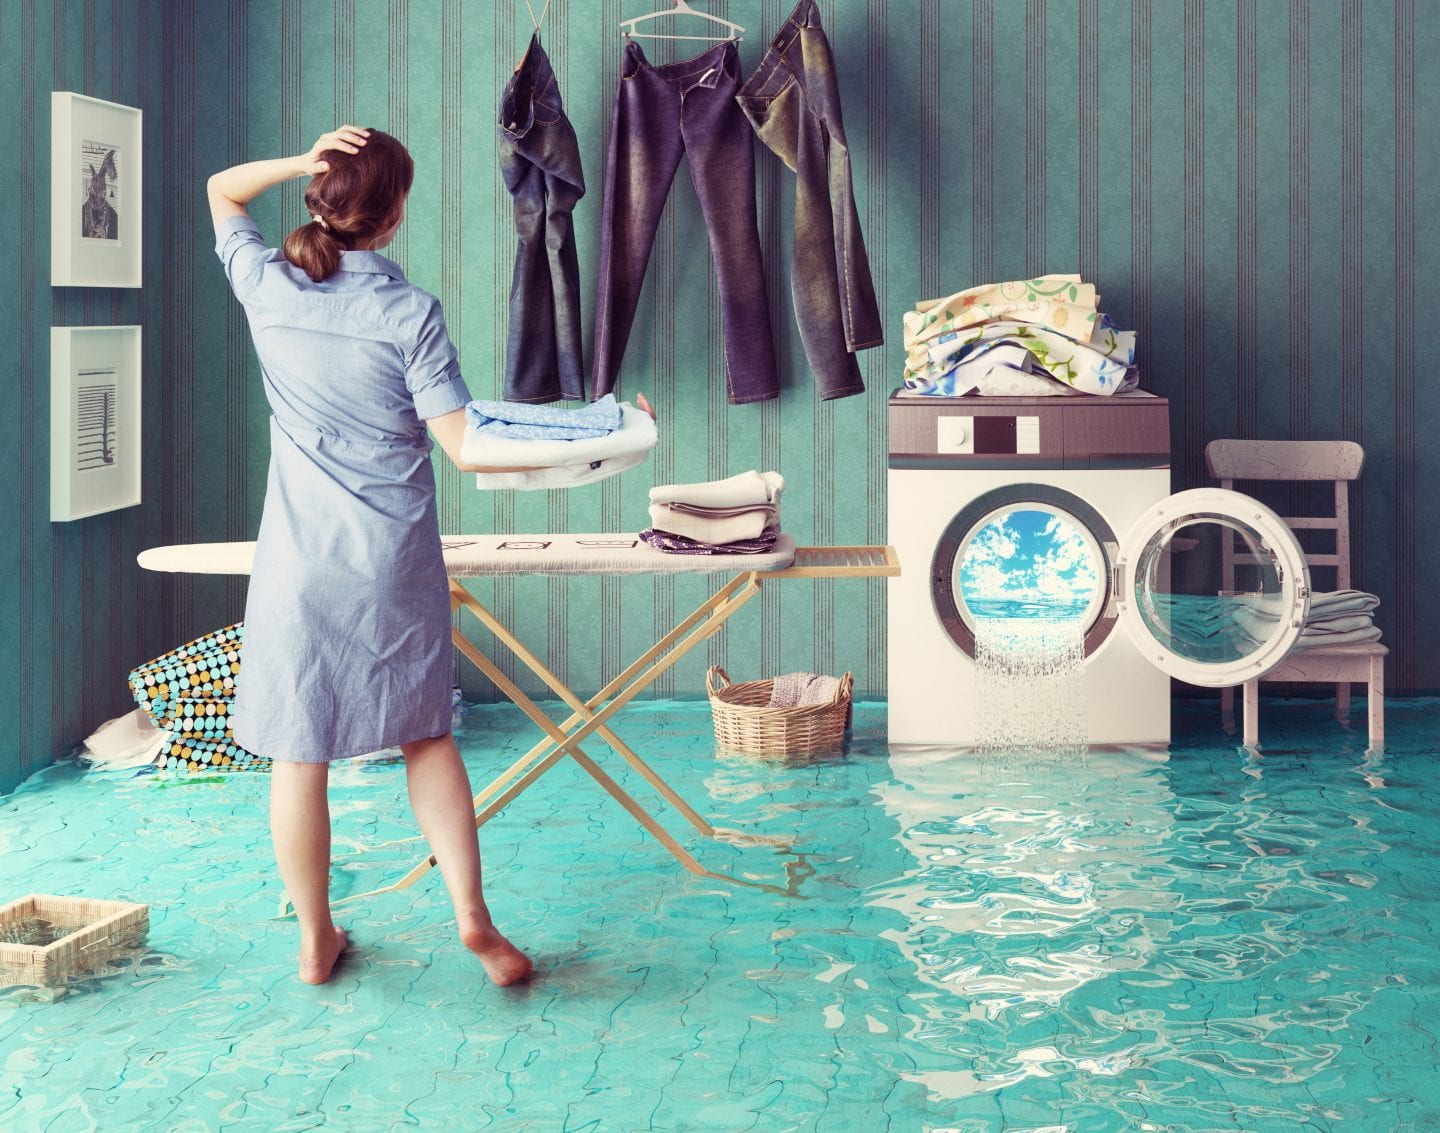 5 Tips to Tackle Laundry